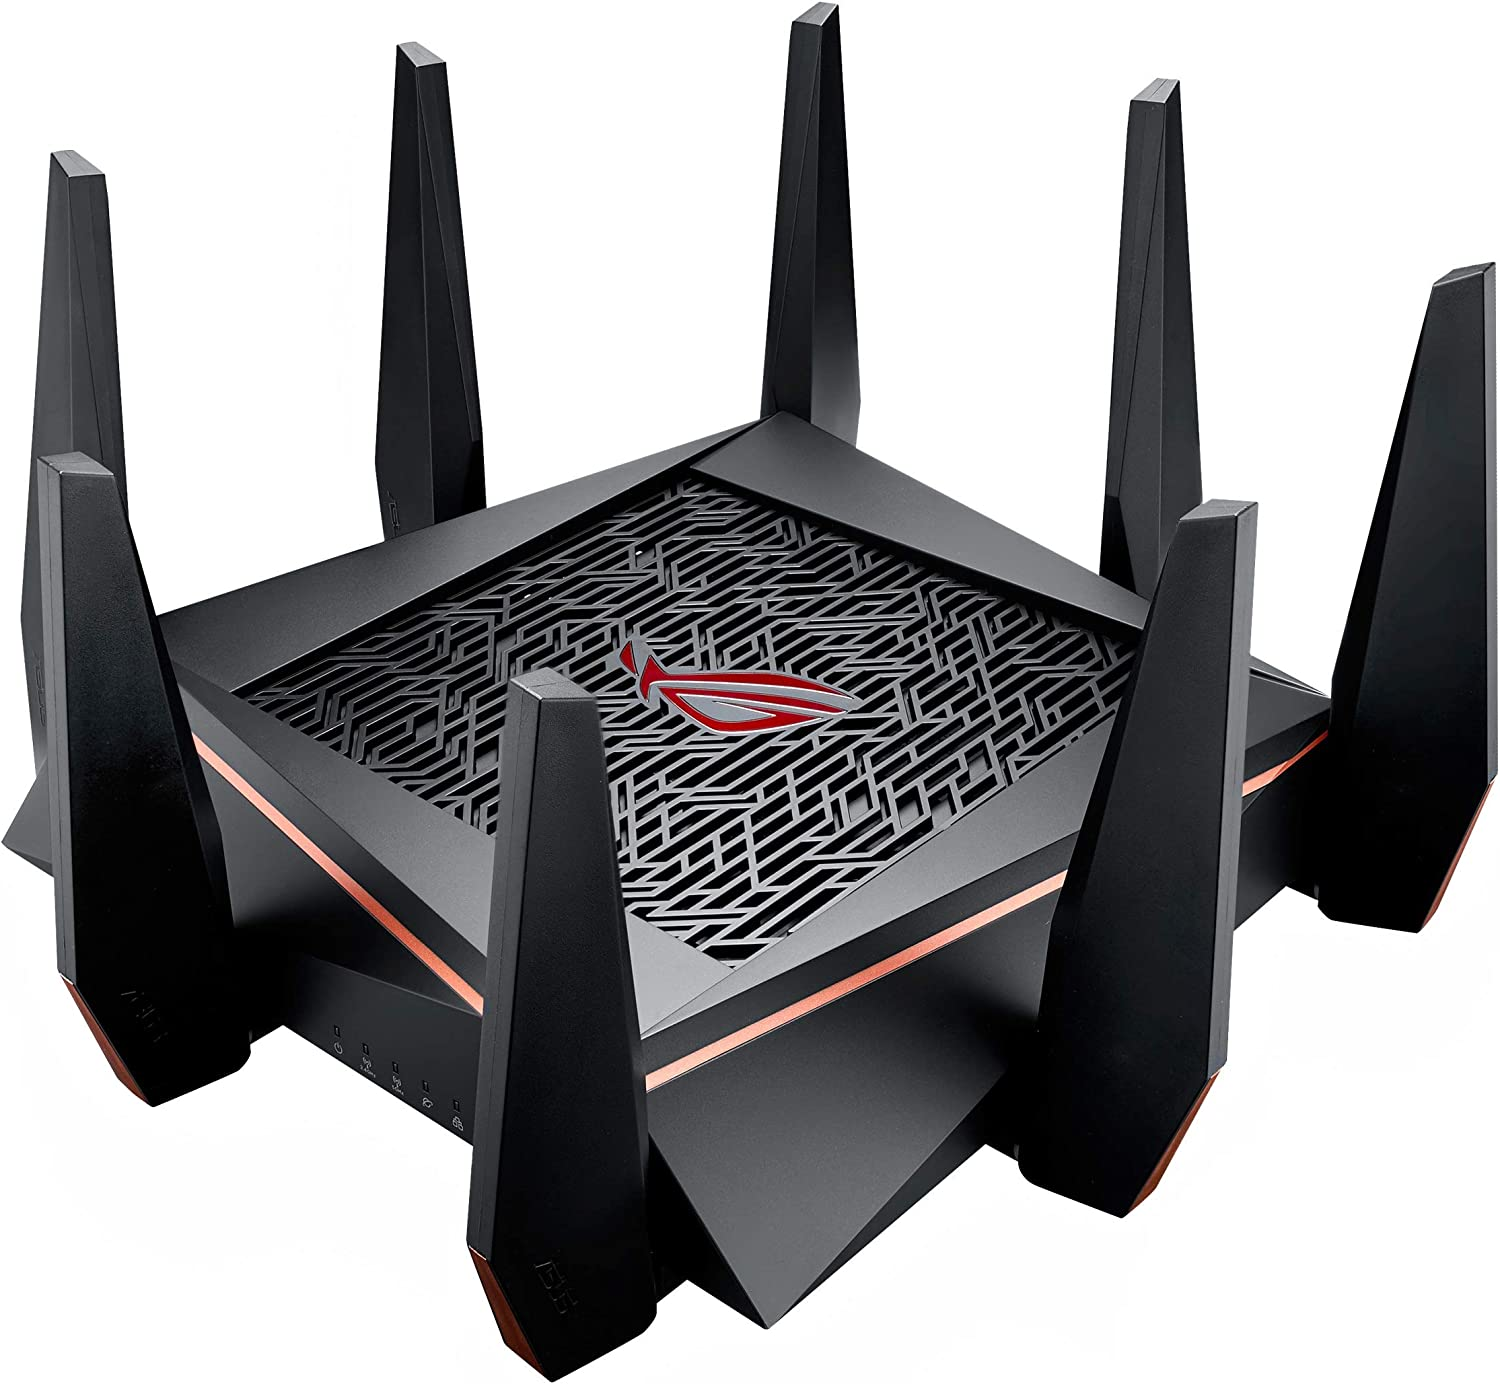 Best Asus Router Of 2020 – Our 7 Picks! 7